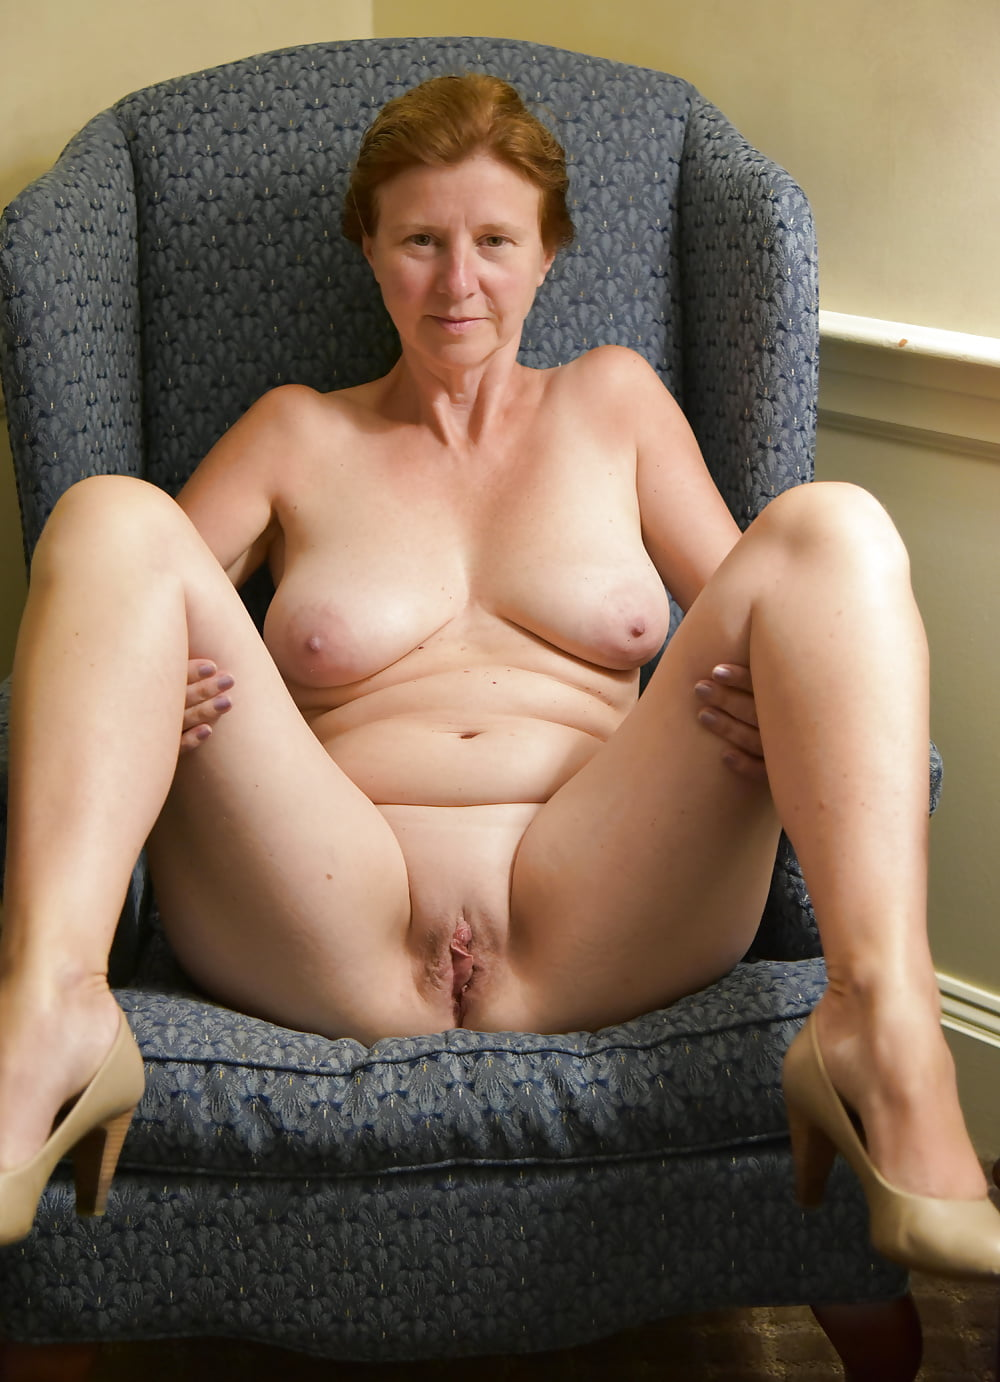 amature-old-mature-naked-homemade-sex-movies-xtube